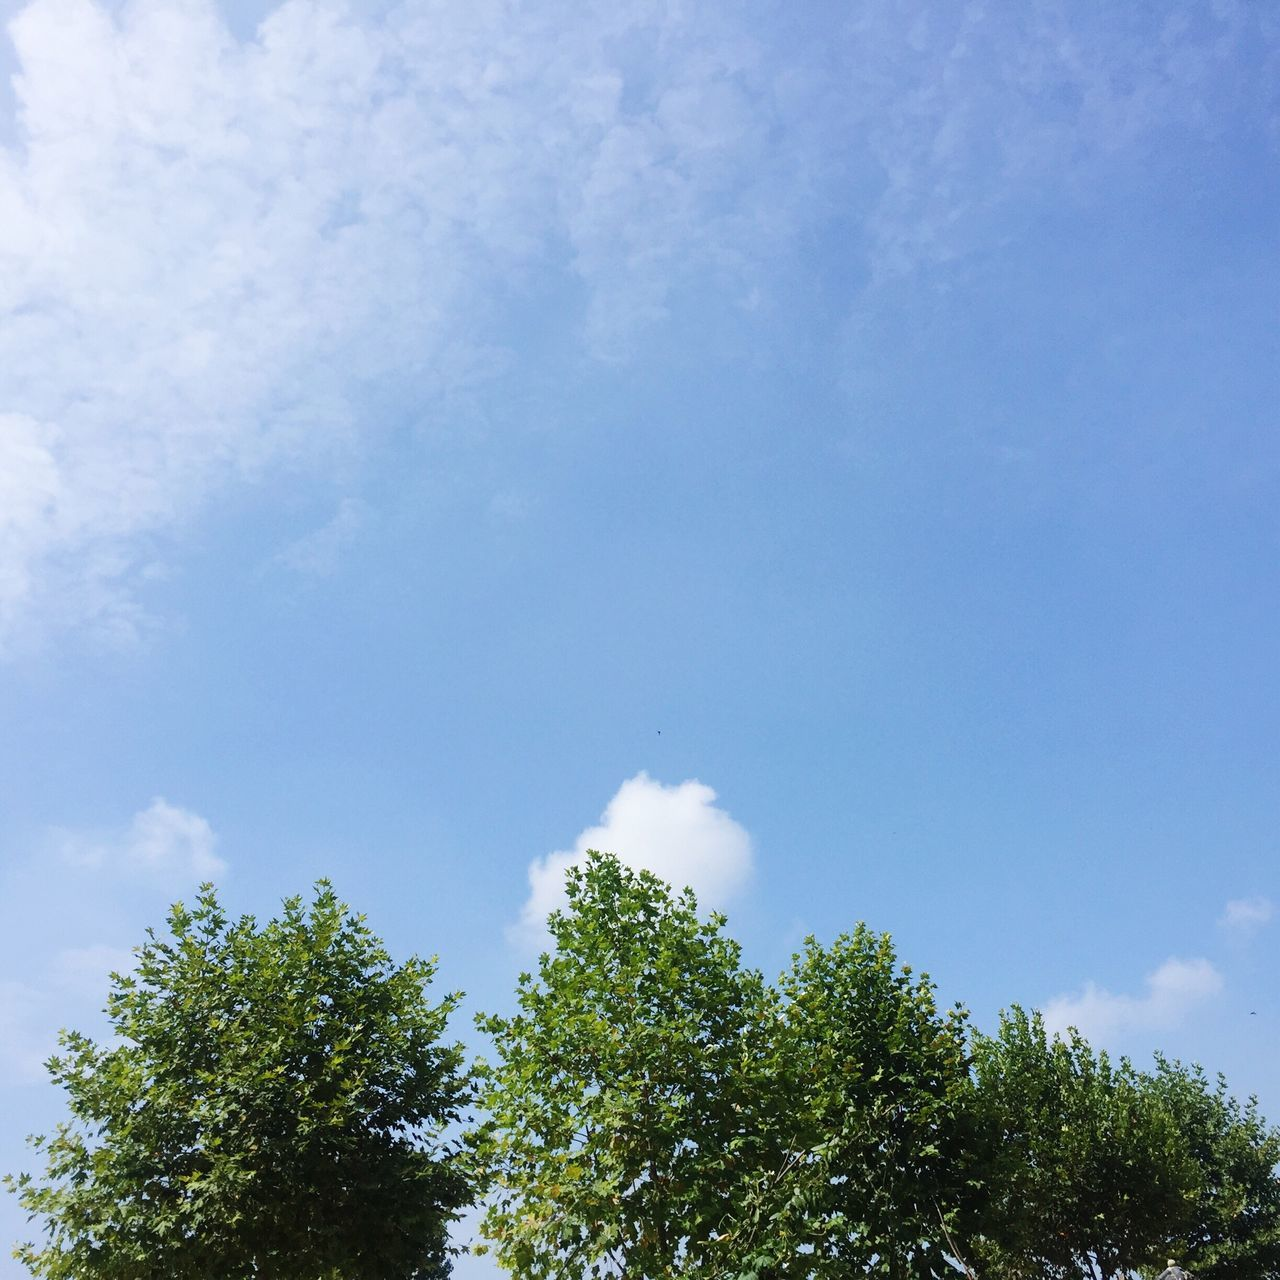 tree, low angle view, sky, nature, beauty in nature, day, cloud - sky, growth, no people, outdoors, scenics, tranquility, blue